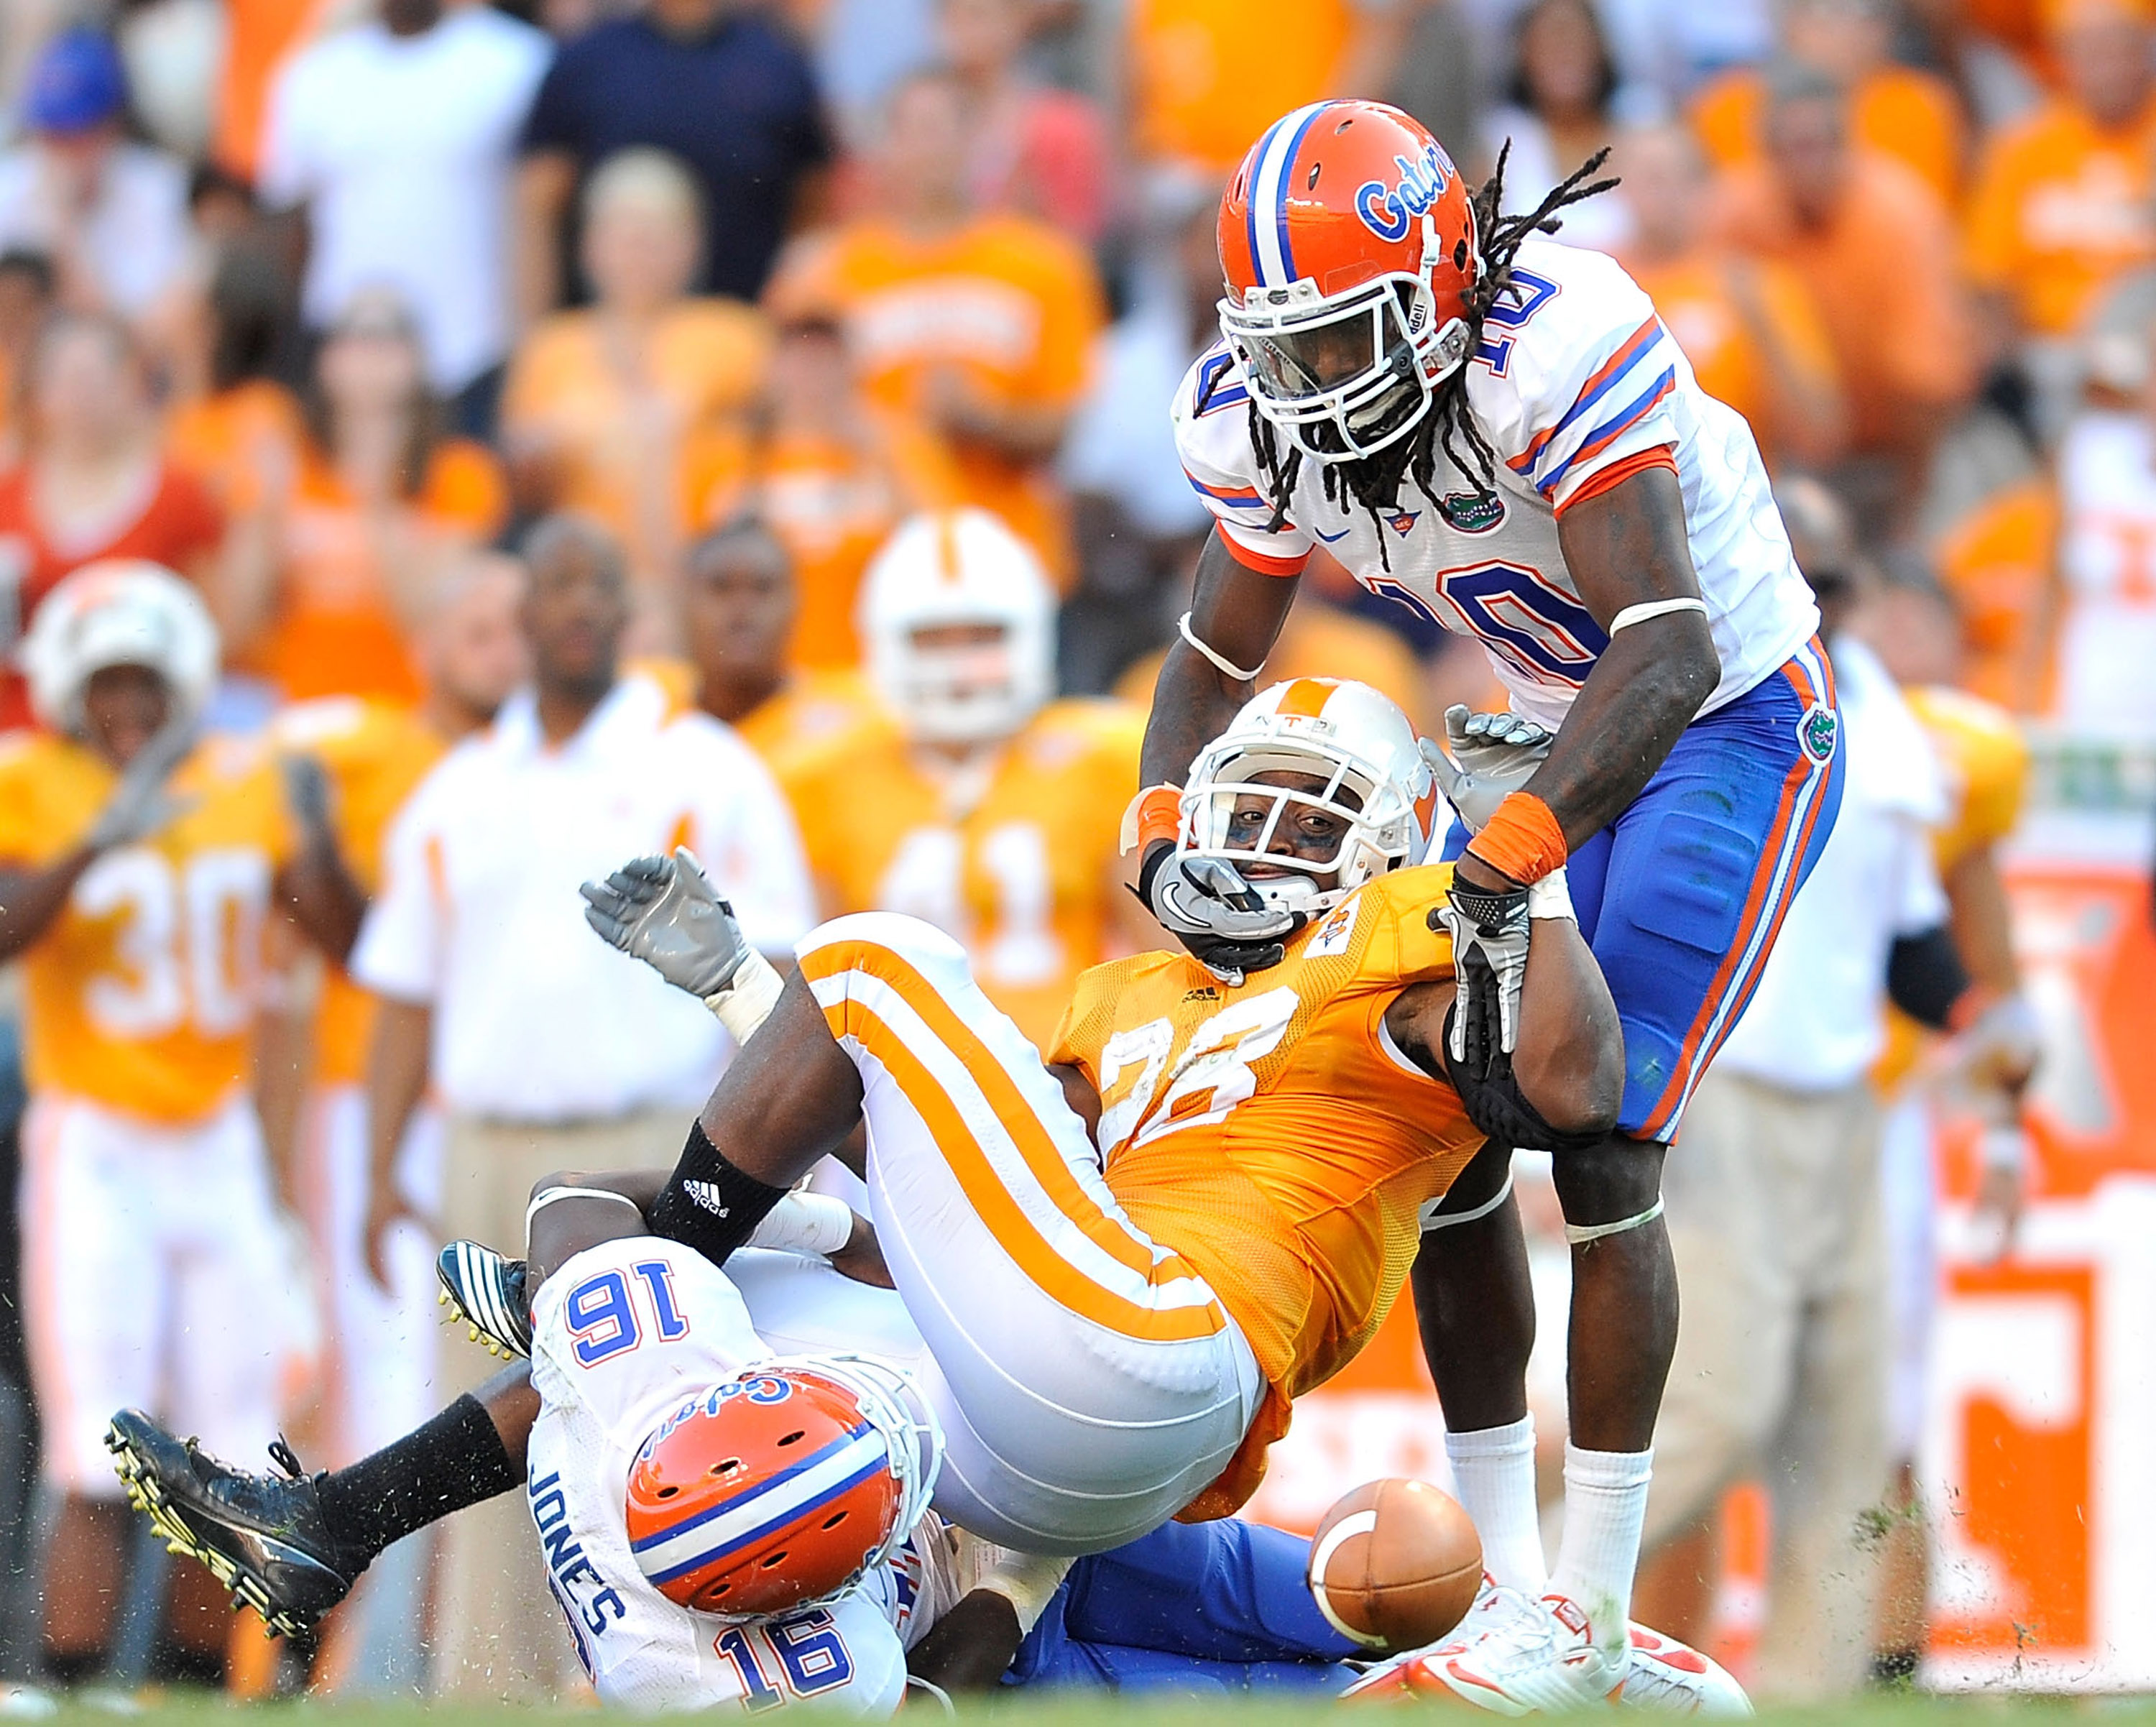 KNOXVILLE, TN - SEPTEMBER 18:  Will Hill #10 and A.J. Jones #16 of the Florida Gators force a fumble by Tauren Poole #28 of the Tennessee Volunteers late in the fourth quarter at Neyland Stadium on September 18, 2010 in Knoxville, Tennessee. Florida won 3